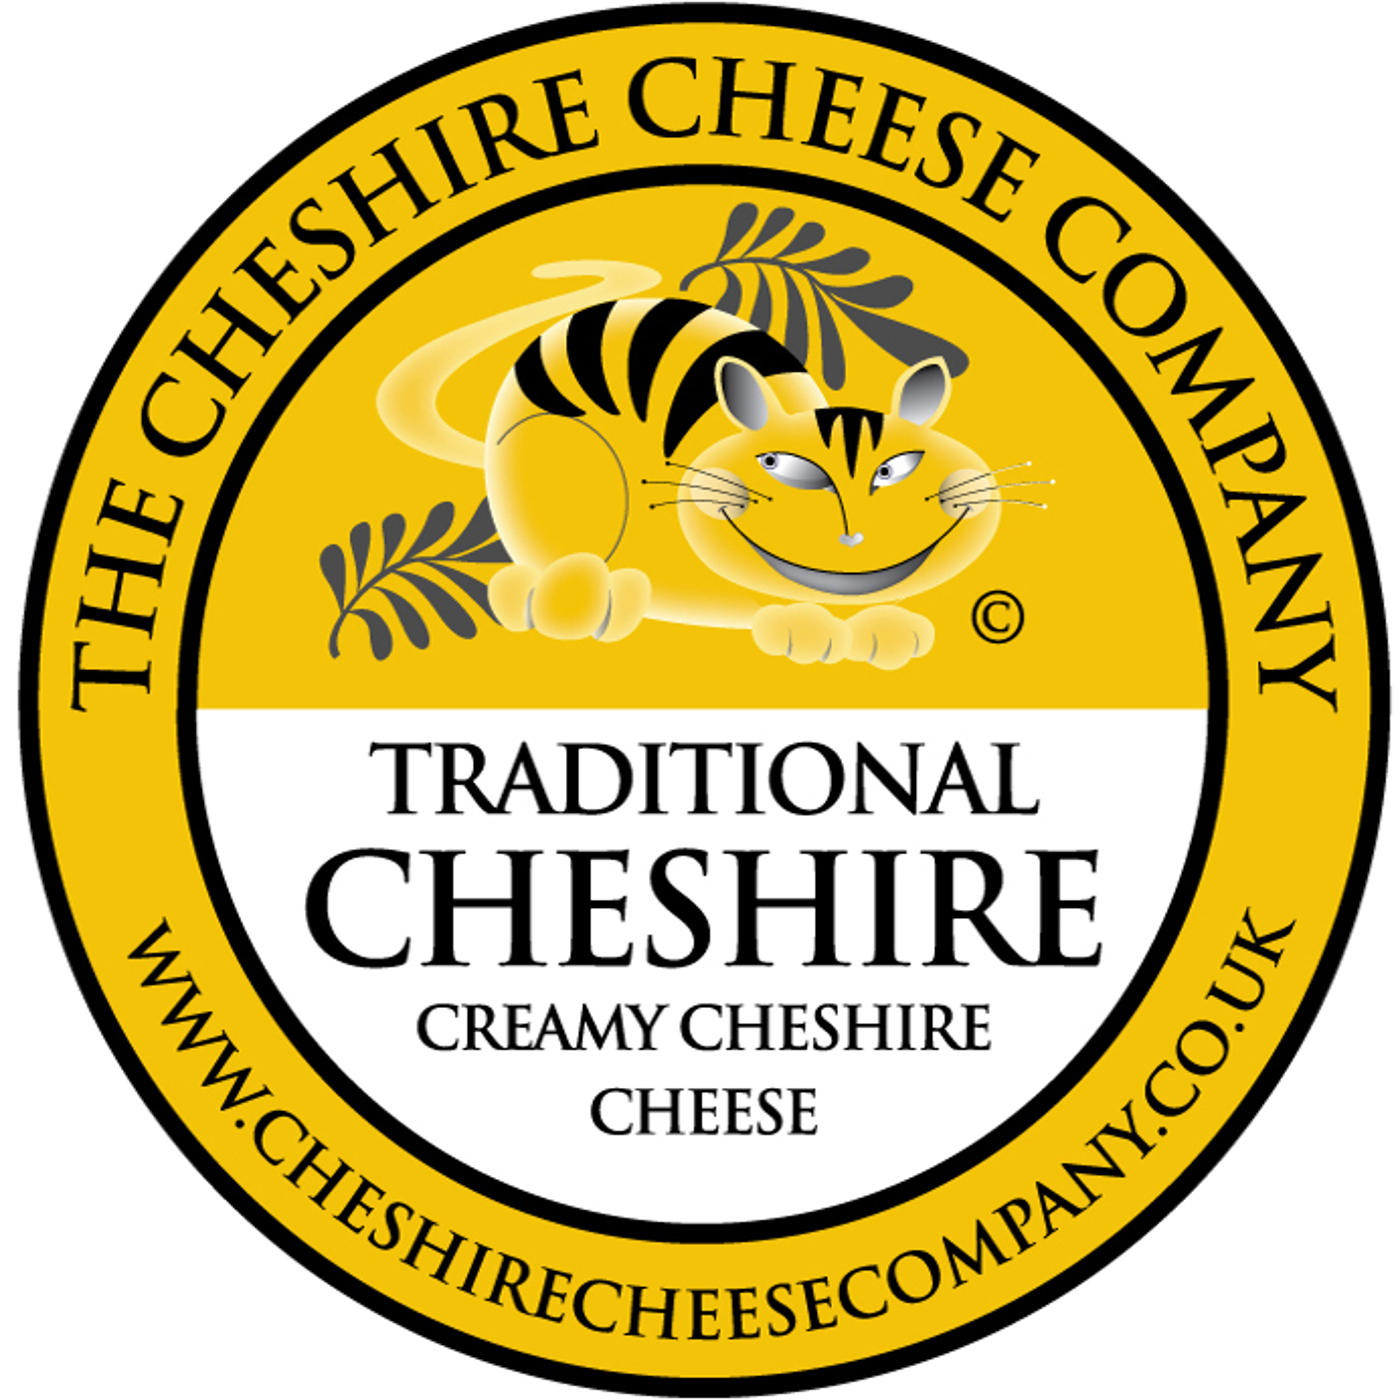 Cheshire Cheese Company Products